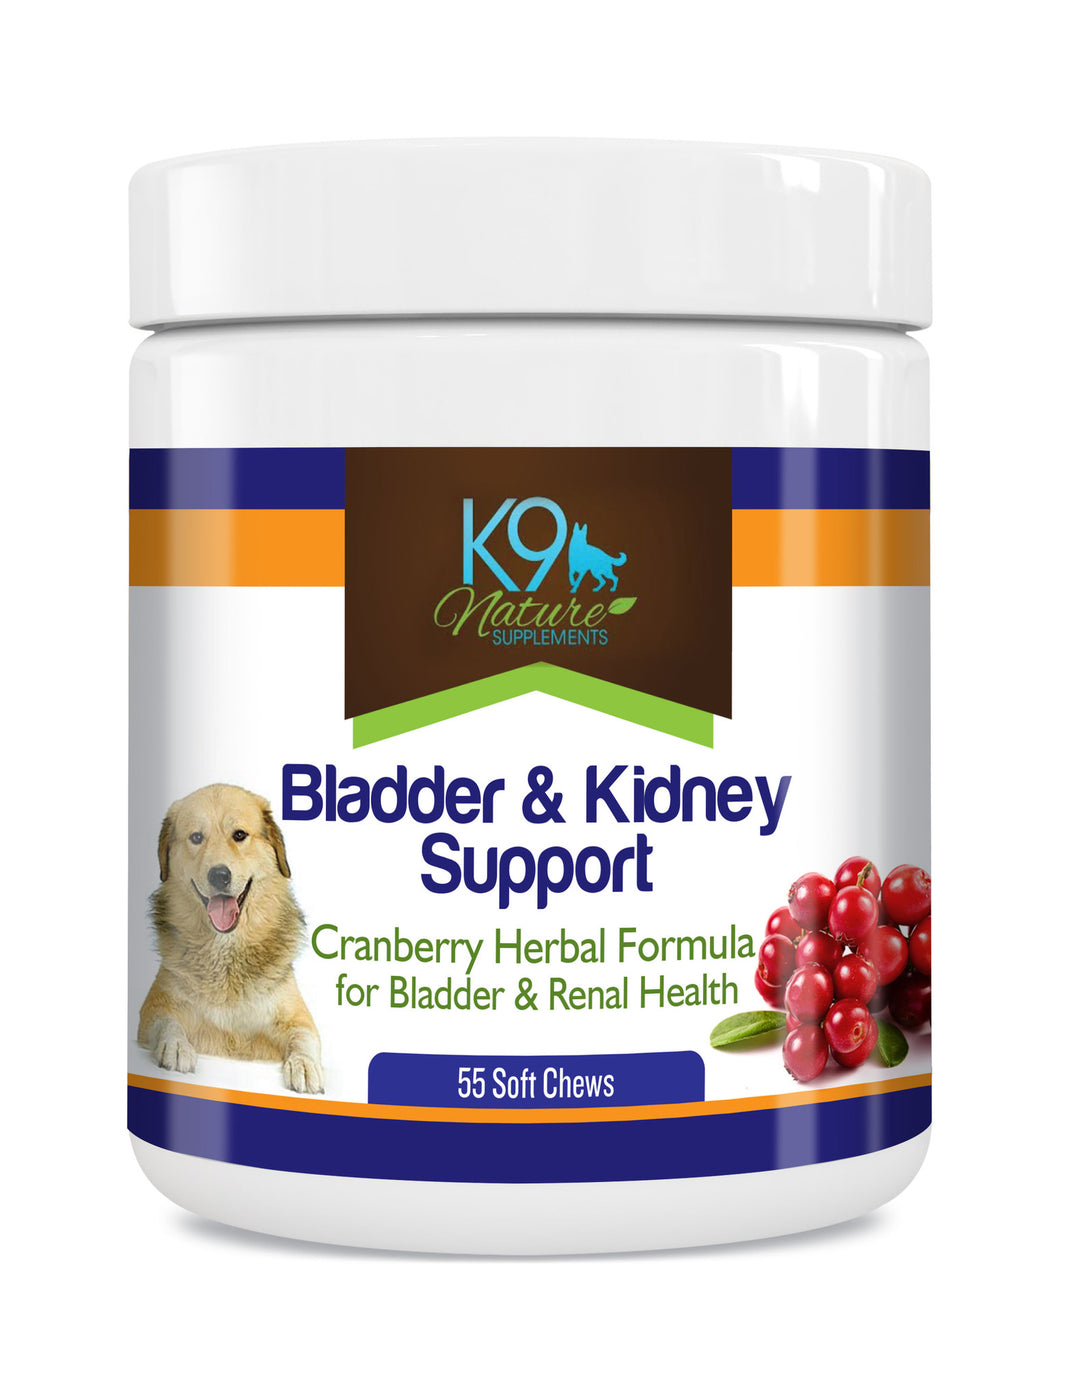 K9 Nature Supplements Bladder Kidney Support